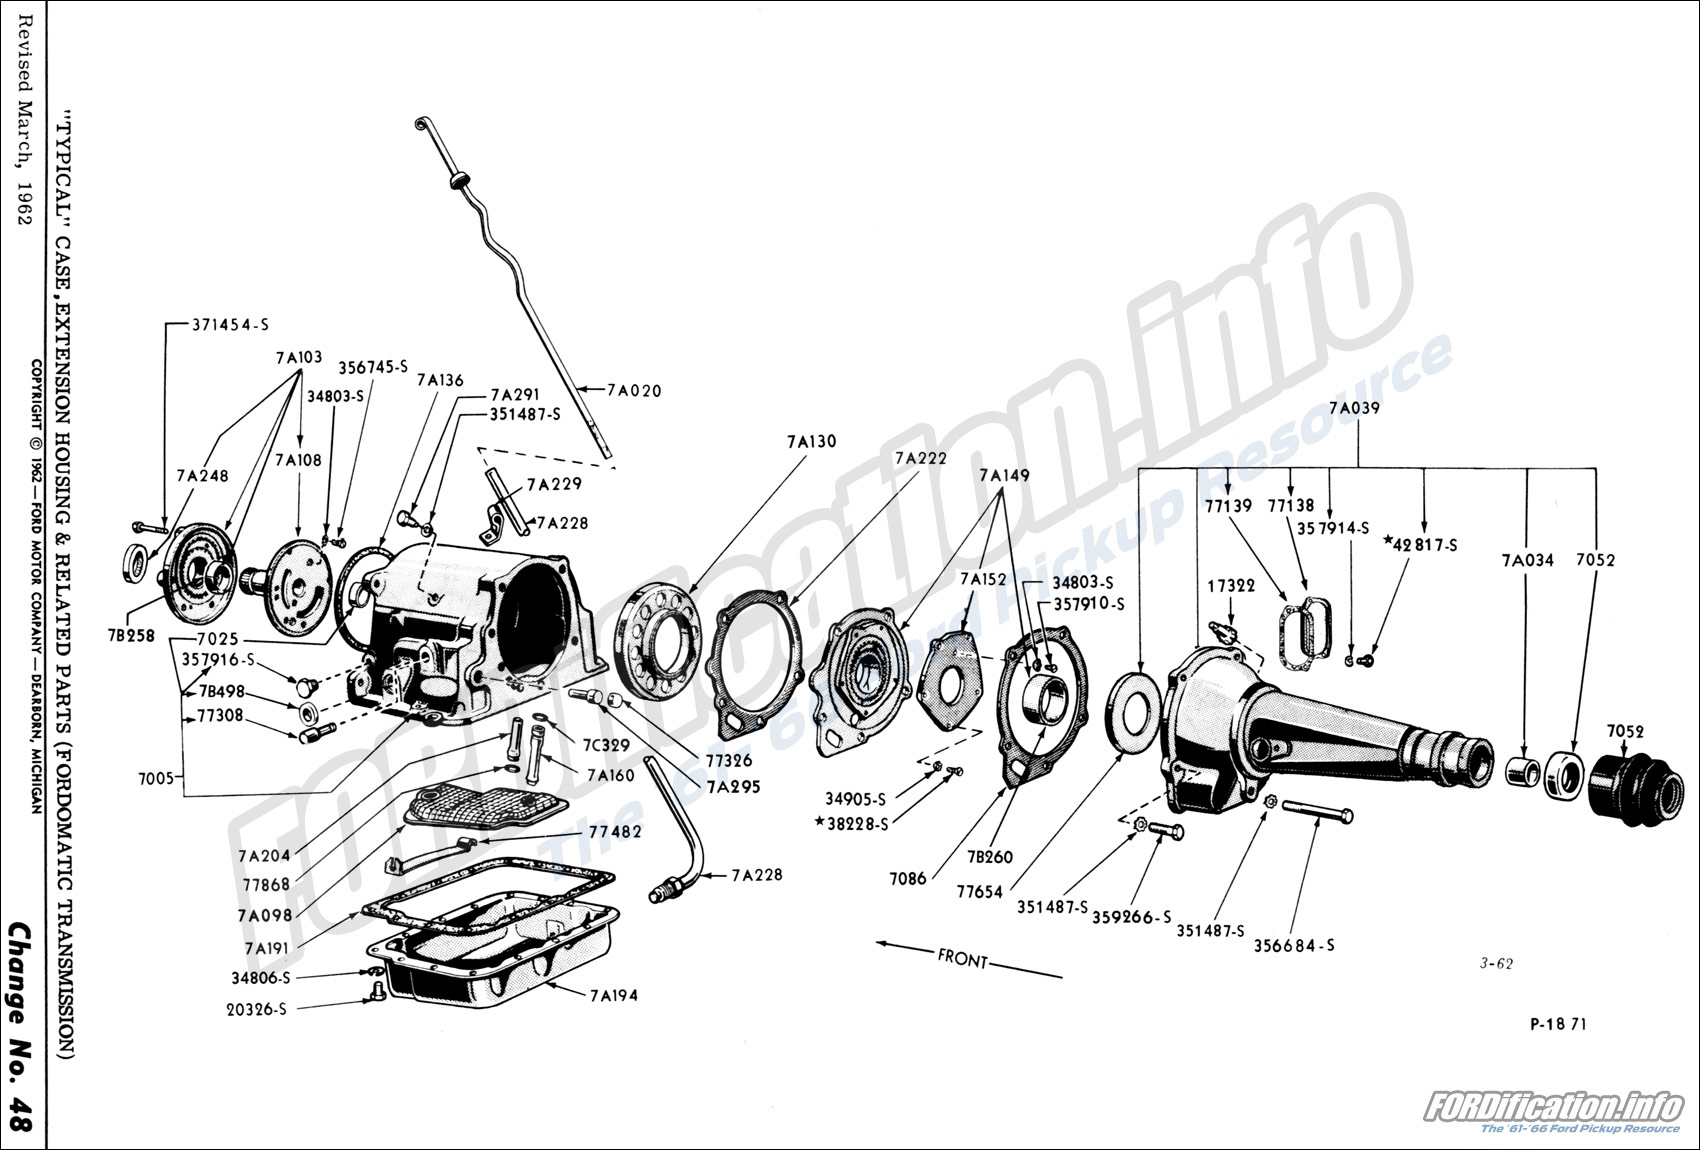 Fordomatic Transmission Diagram Manual Clutch Parts Mpc Drivetrain Schematics Fordification Info The 61 66 Ford Pickup Rh Identification 1986